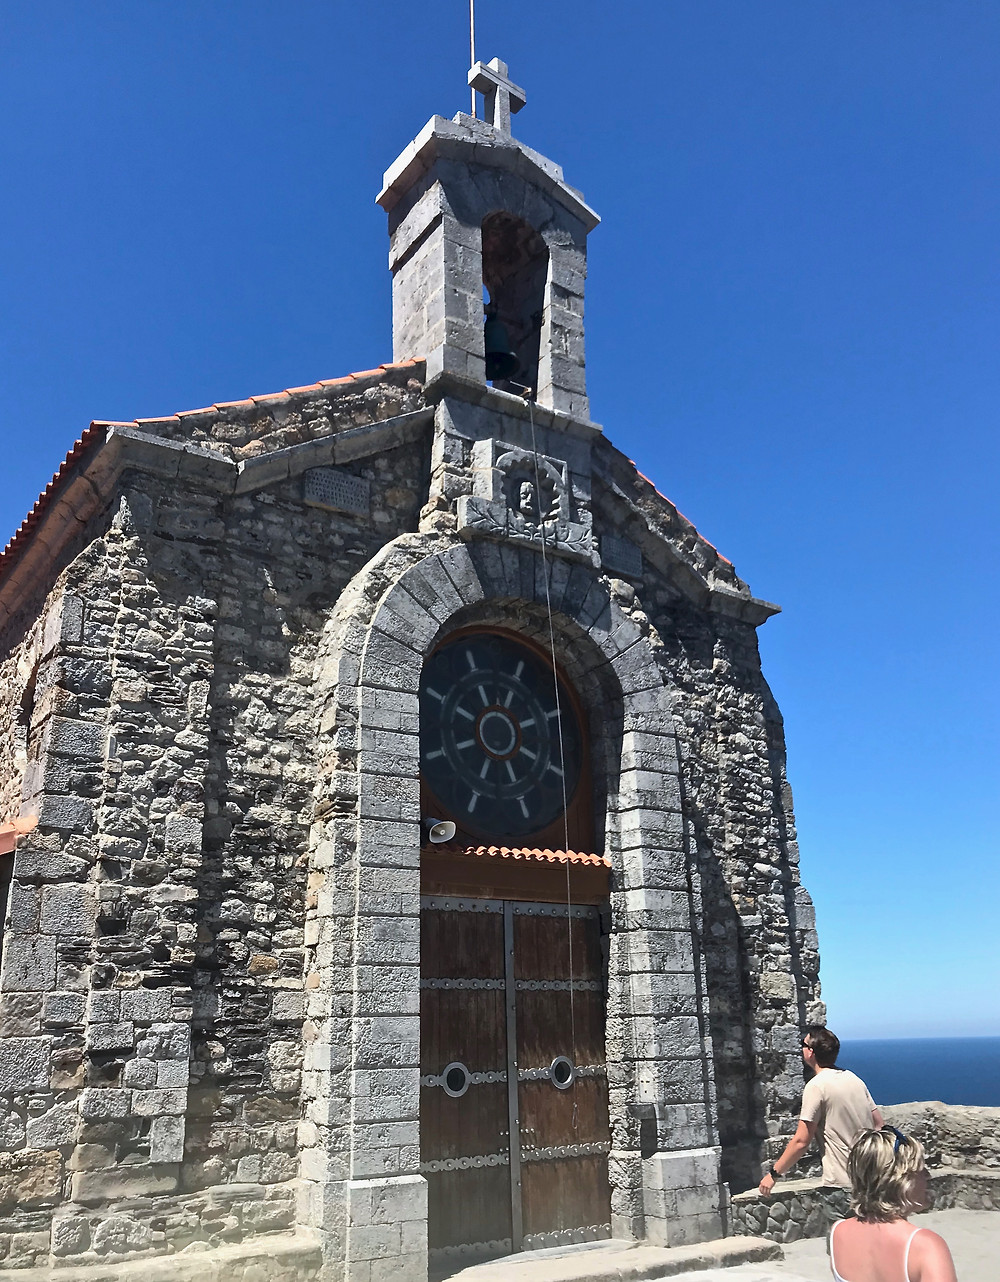 the hermitage church of San Juan de Gaztelugatxe where tourists ring the bell hoping to make wishes and banish demons